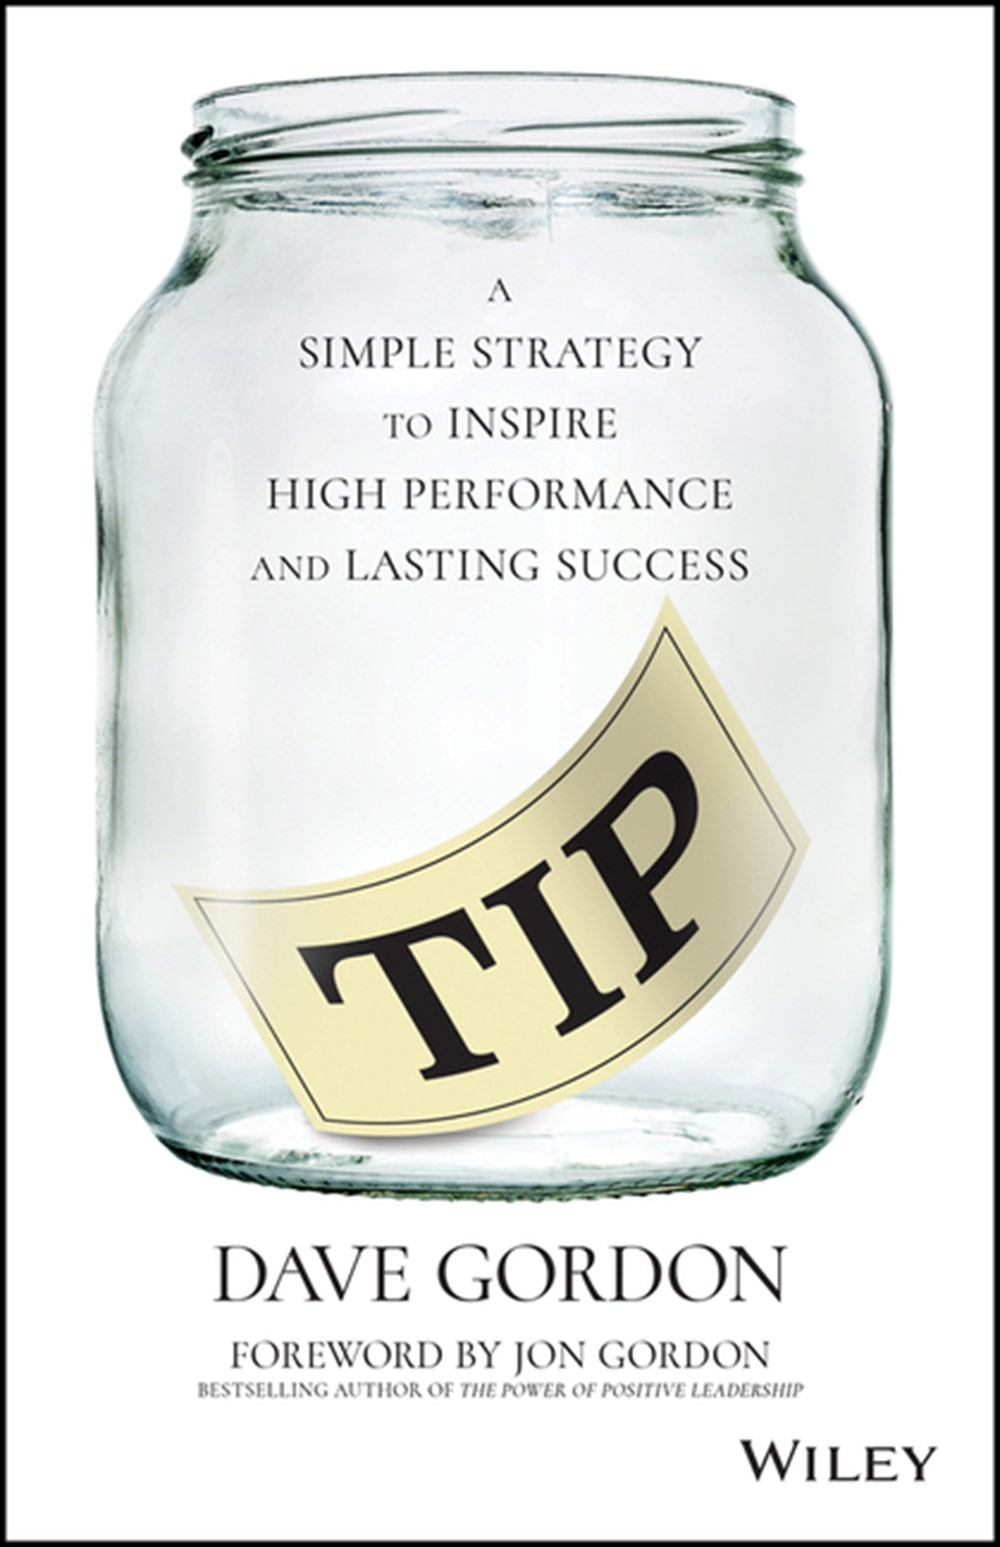 Tip A Simple Strategy to Inspire High Performance and Lasting Success